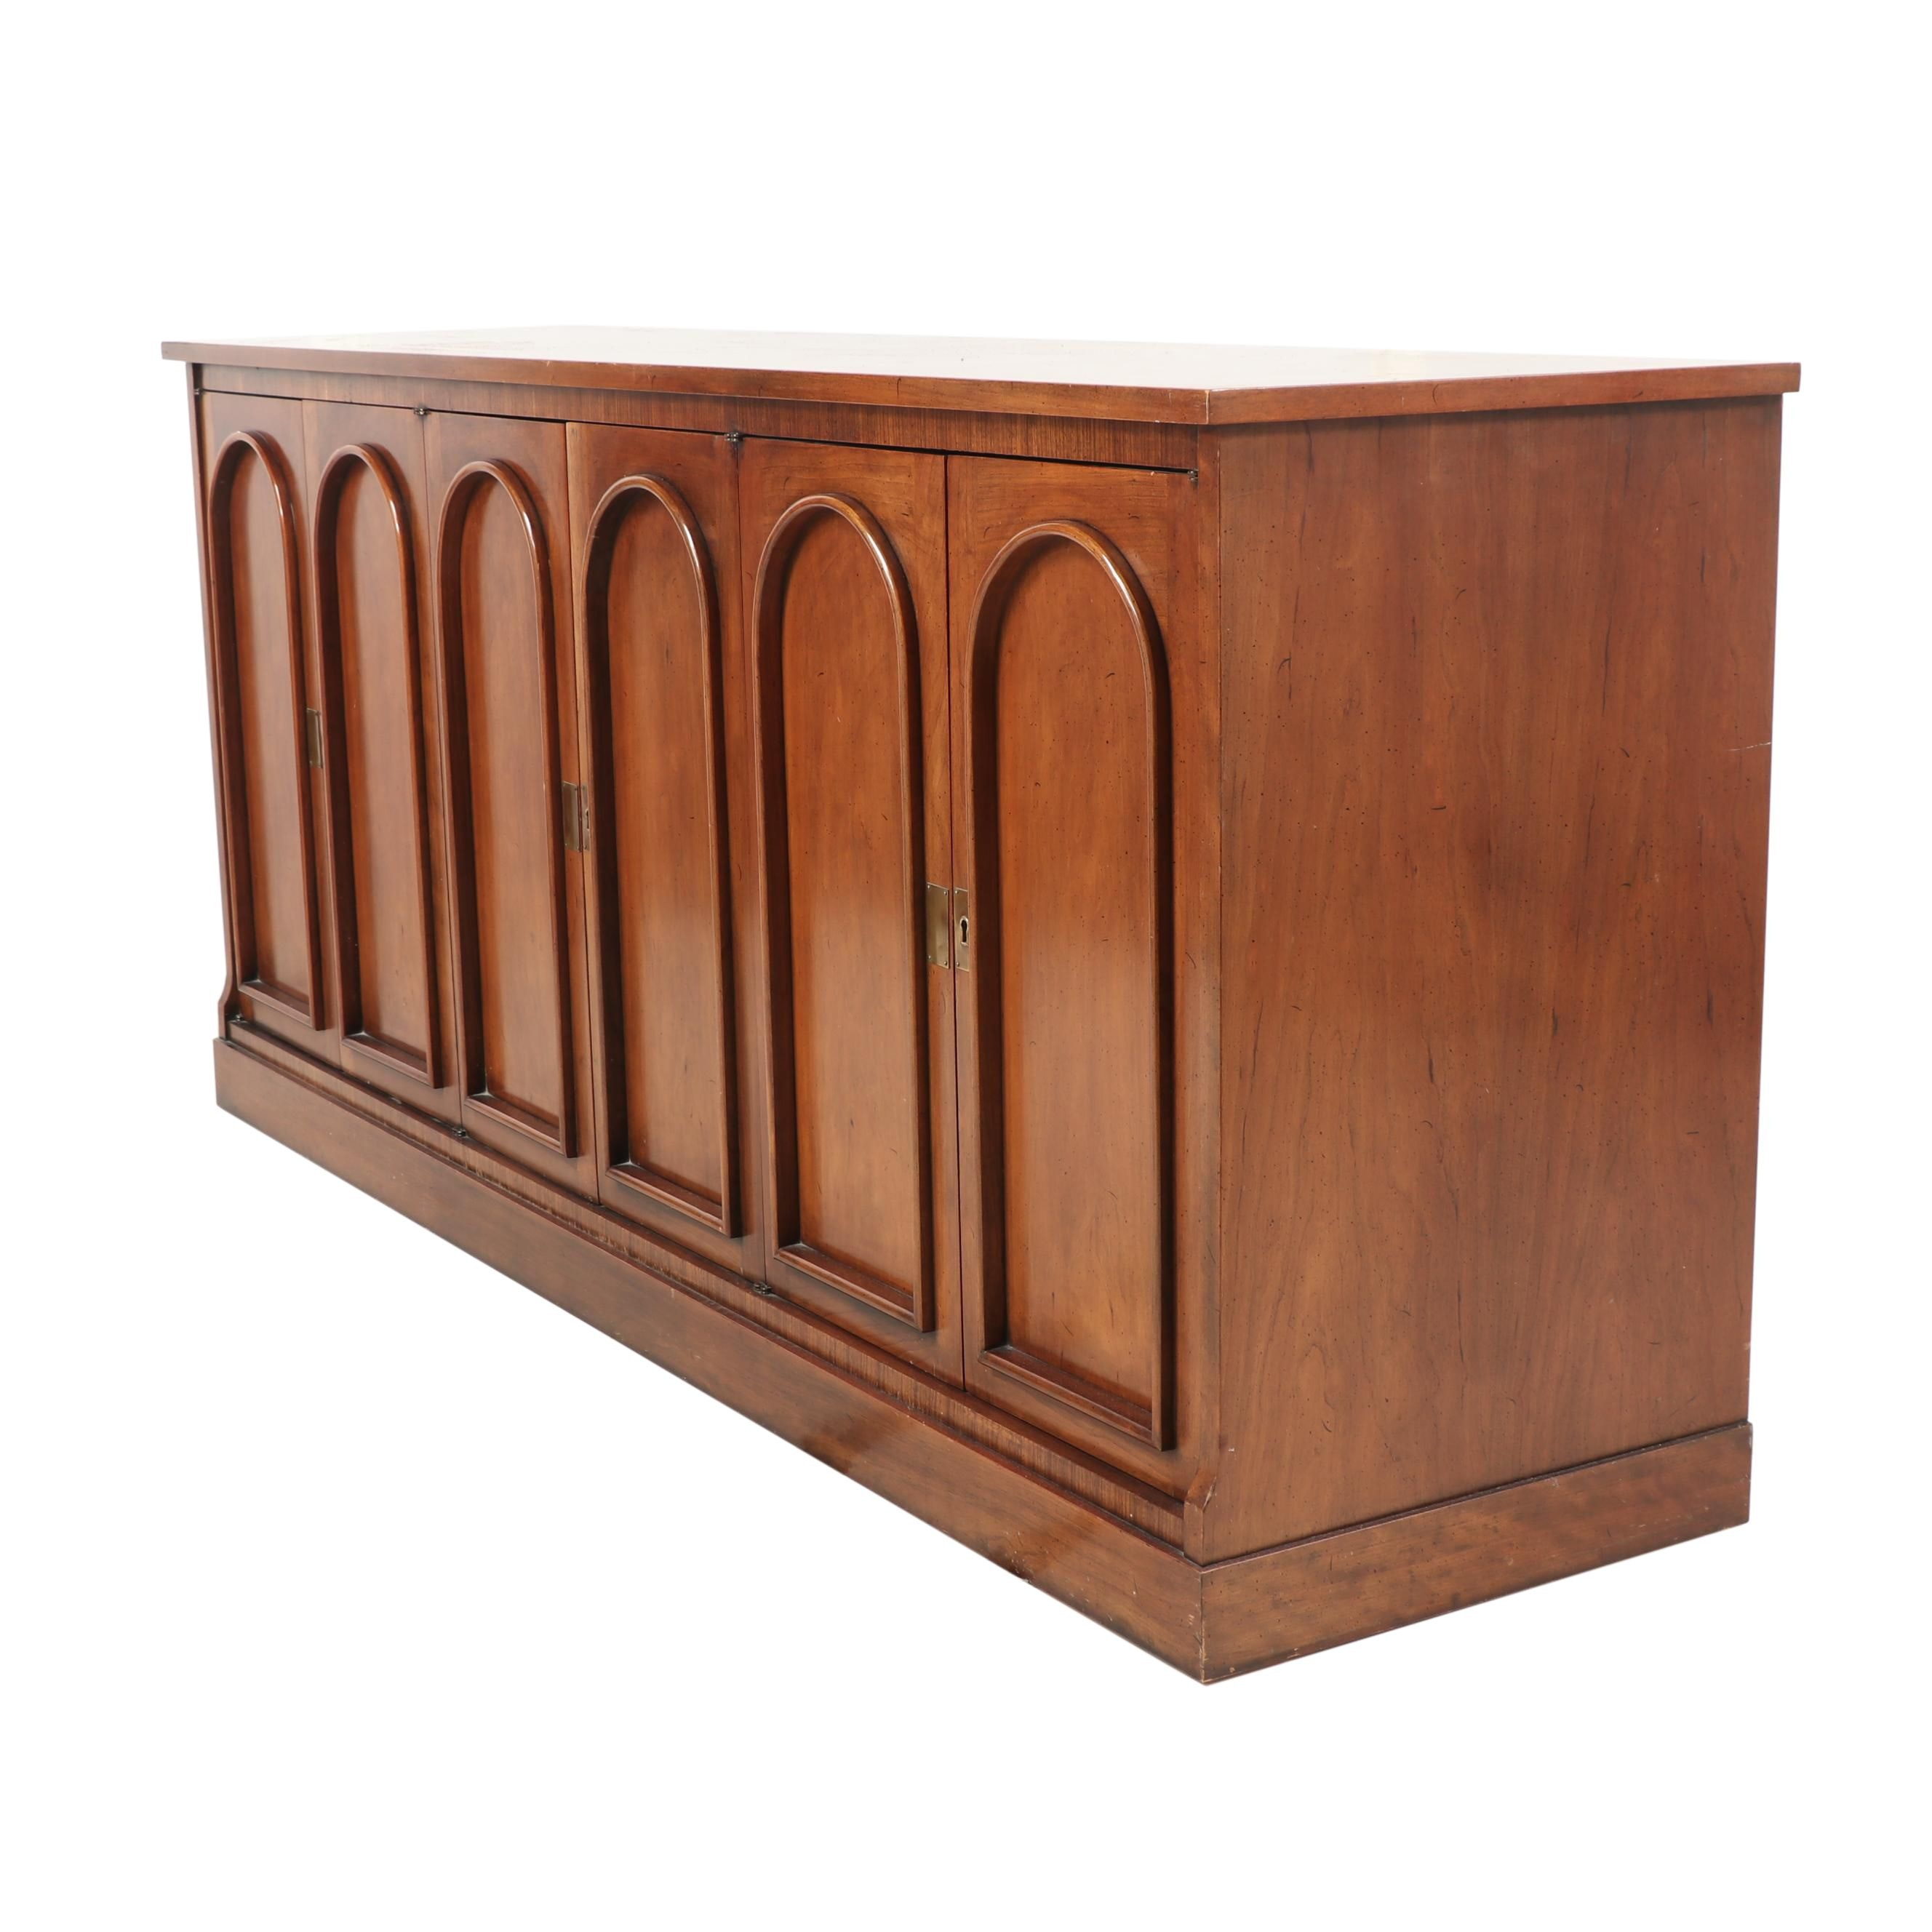 Wooden Credenza, Mid to Late 20th Century